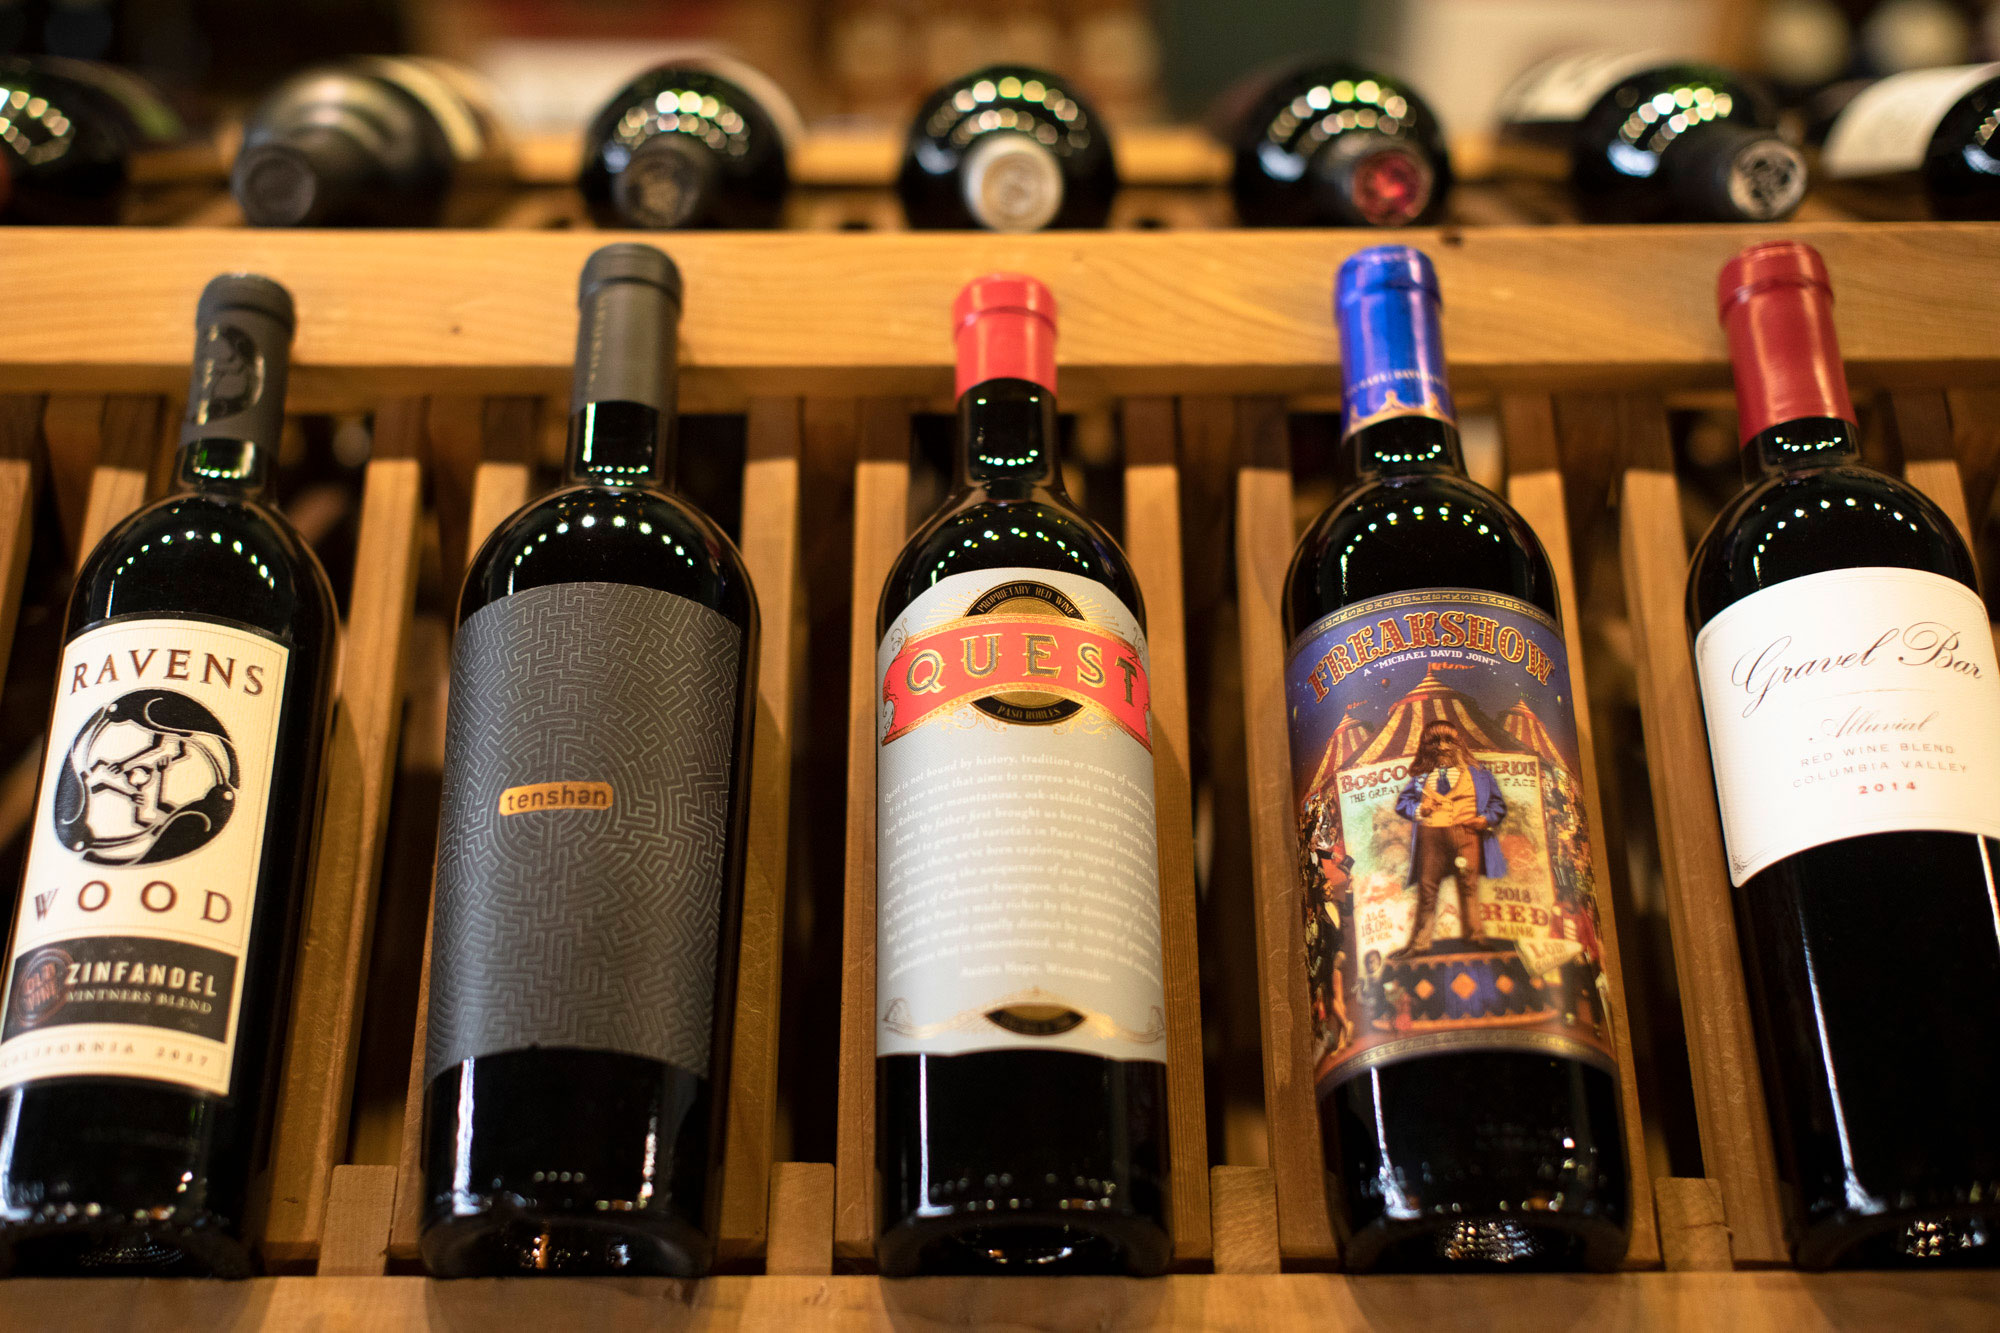 red wine bottle selection on a wine rack